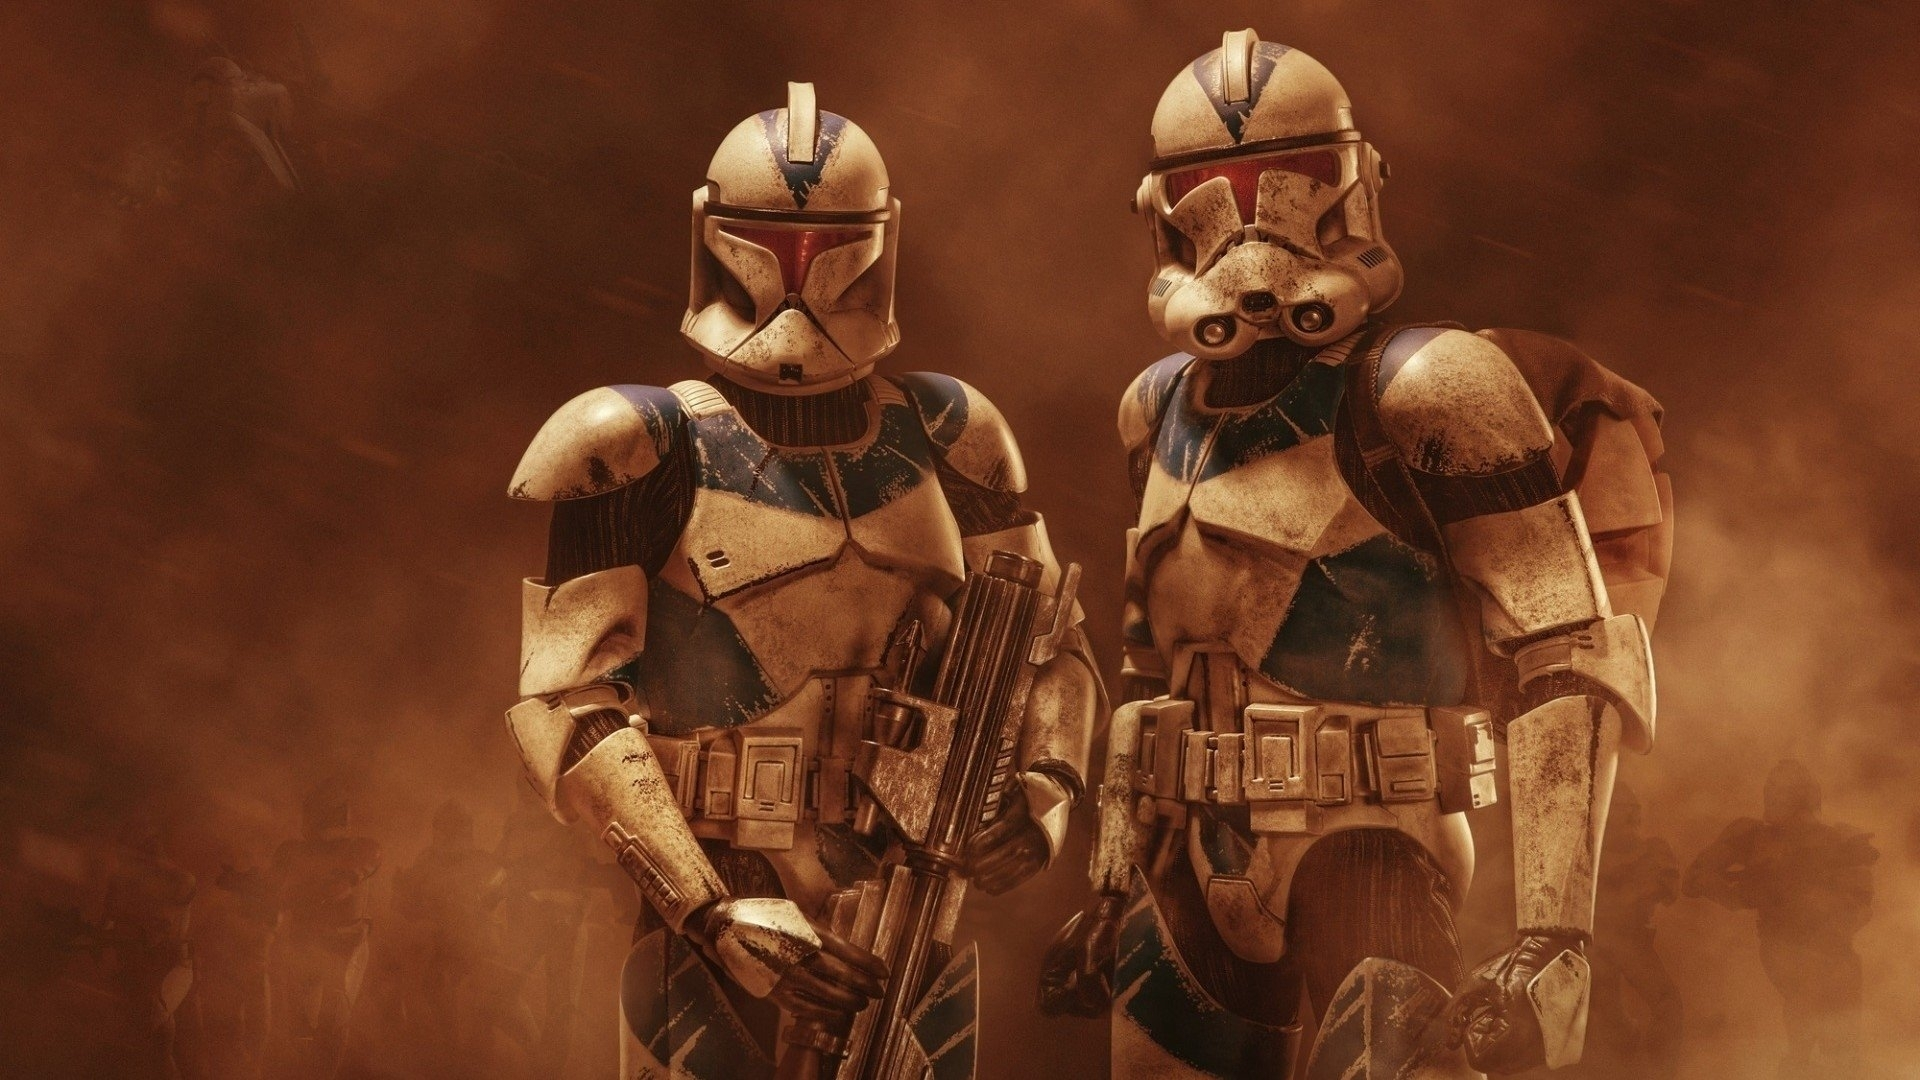 34 clone trooper fonds d'écran hd | arrière-plans - wallpaper abyss